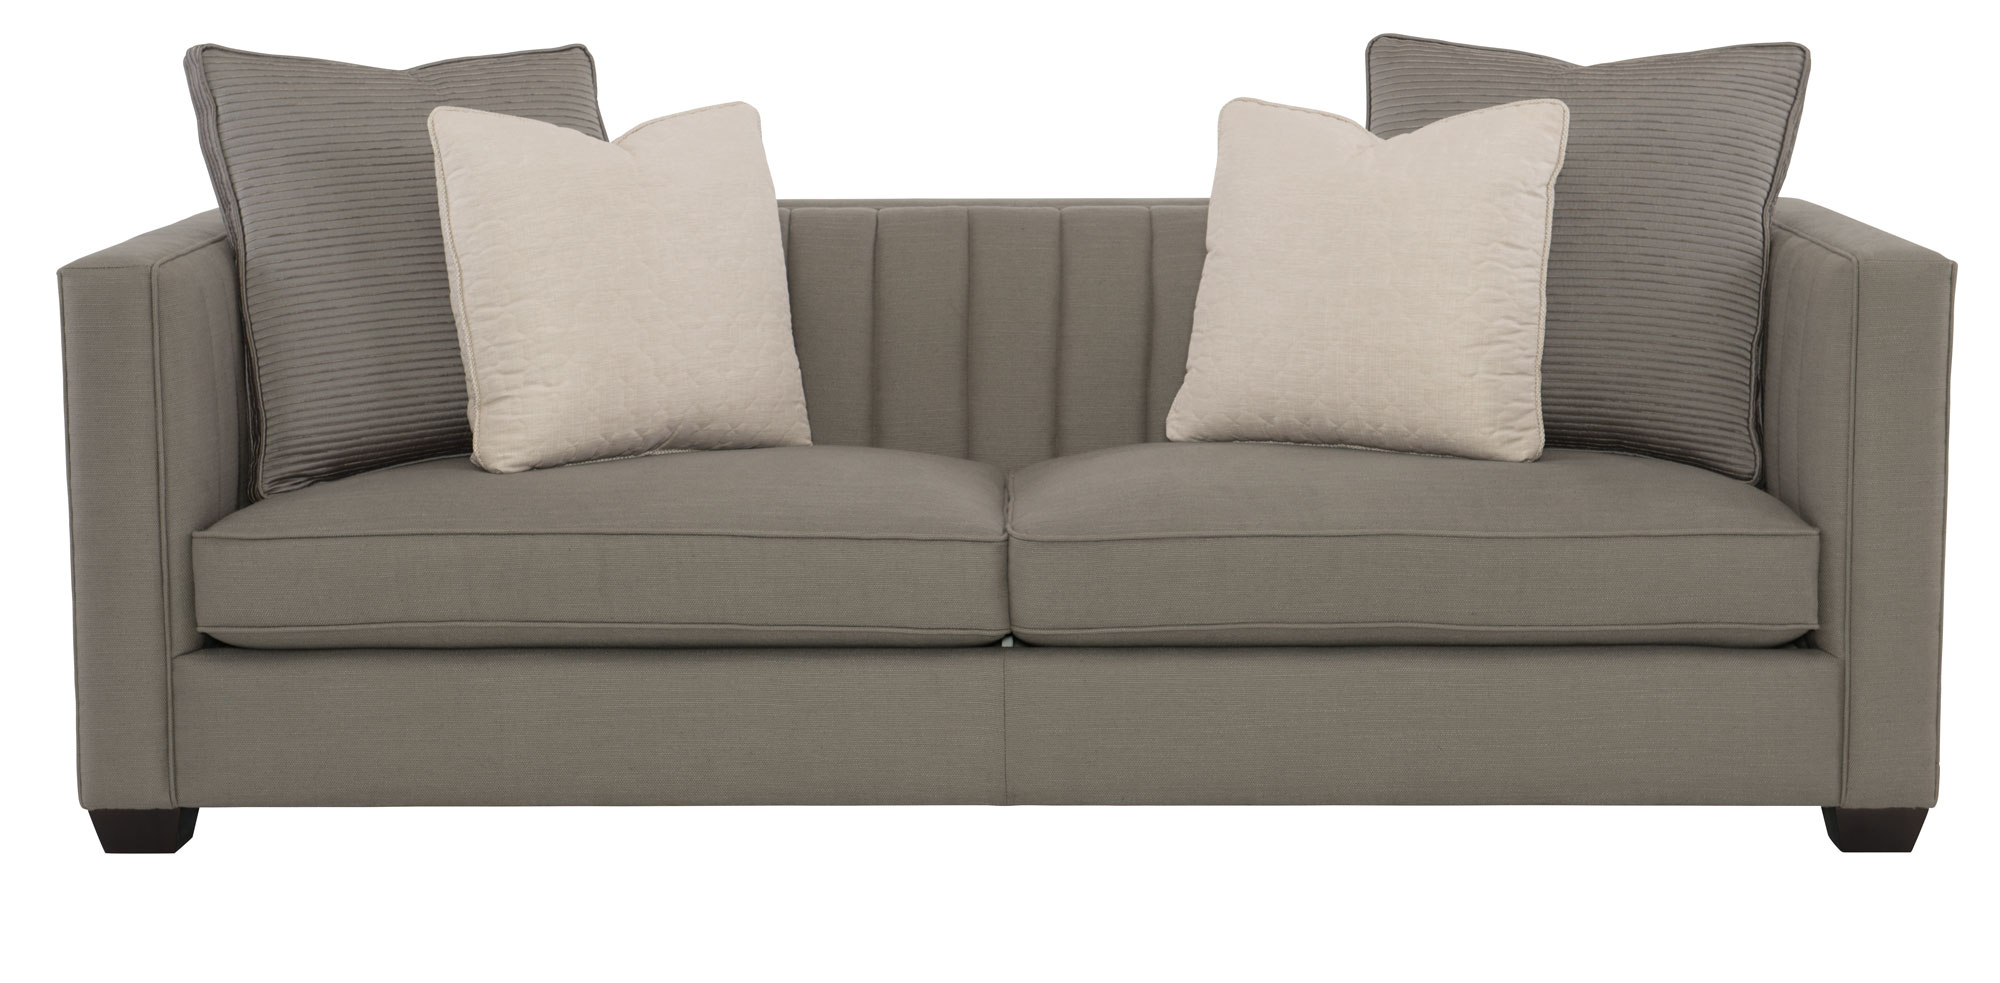 sofas furniture this candace product bernhardt featuring sofa